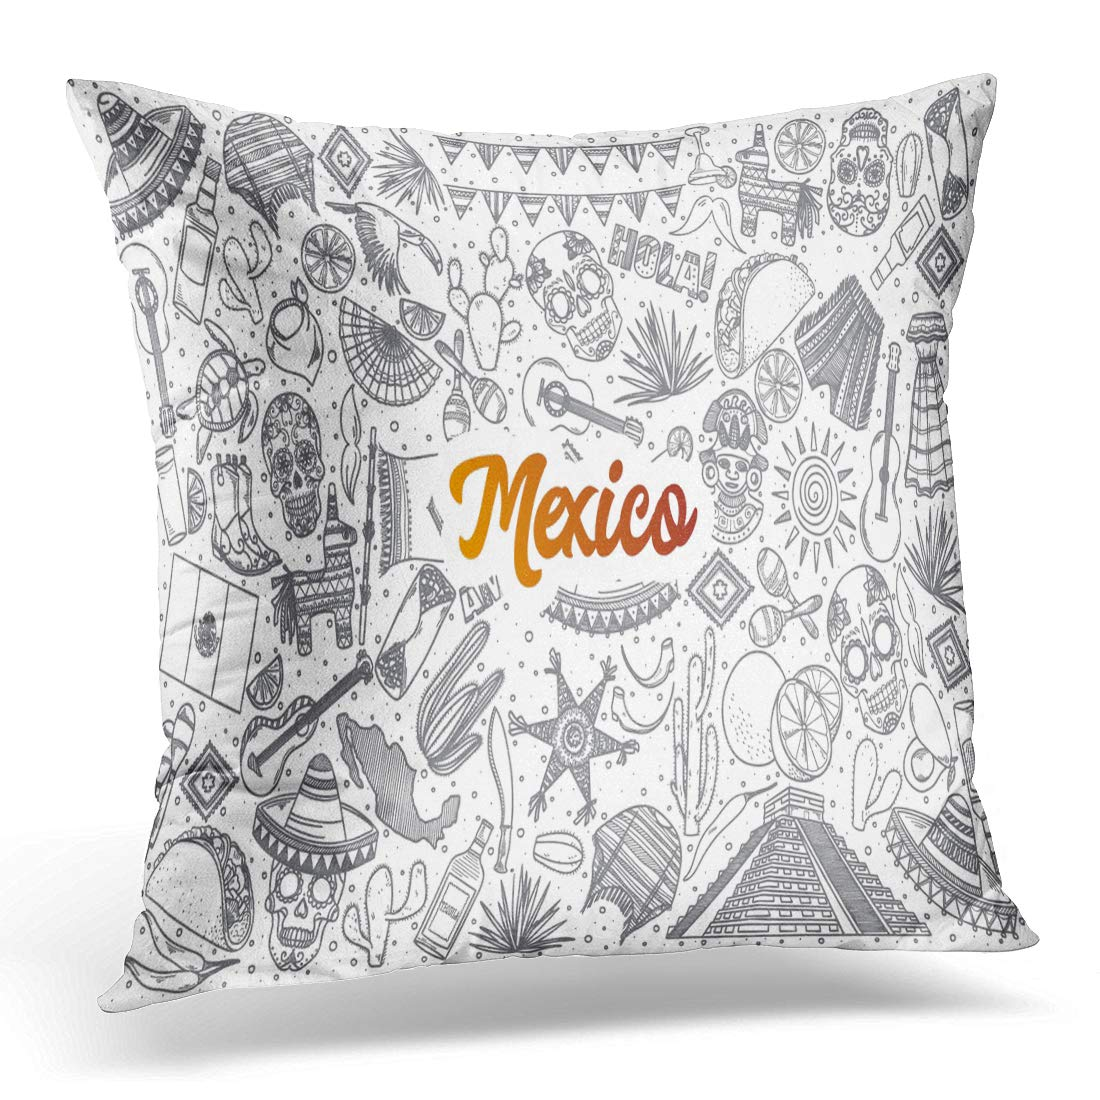 3D Pillow Covers Case Sketch Hand Drawn Mexico Doodle Orange Lettering in Cactus Pillowcase Bedroom